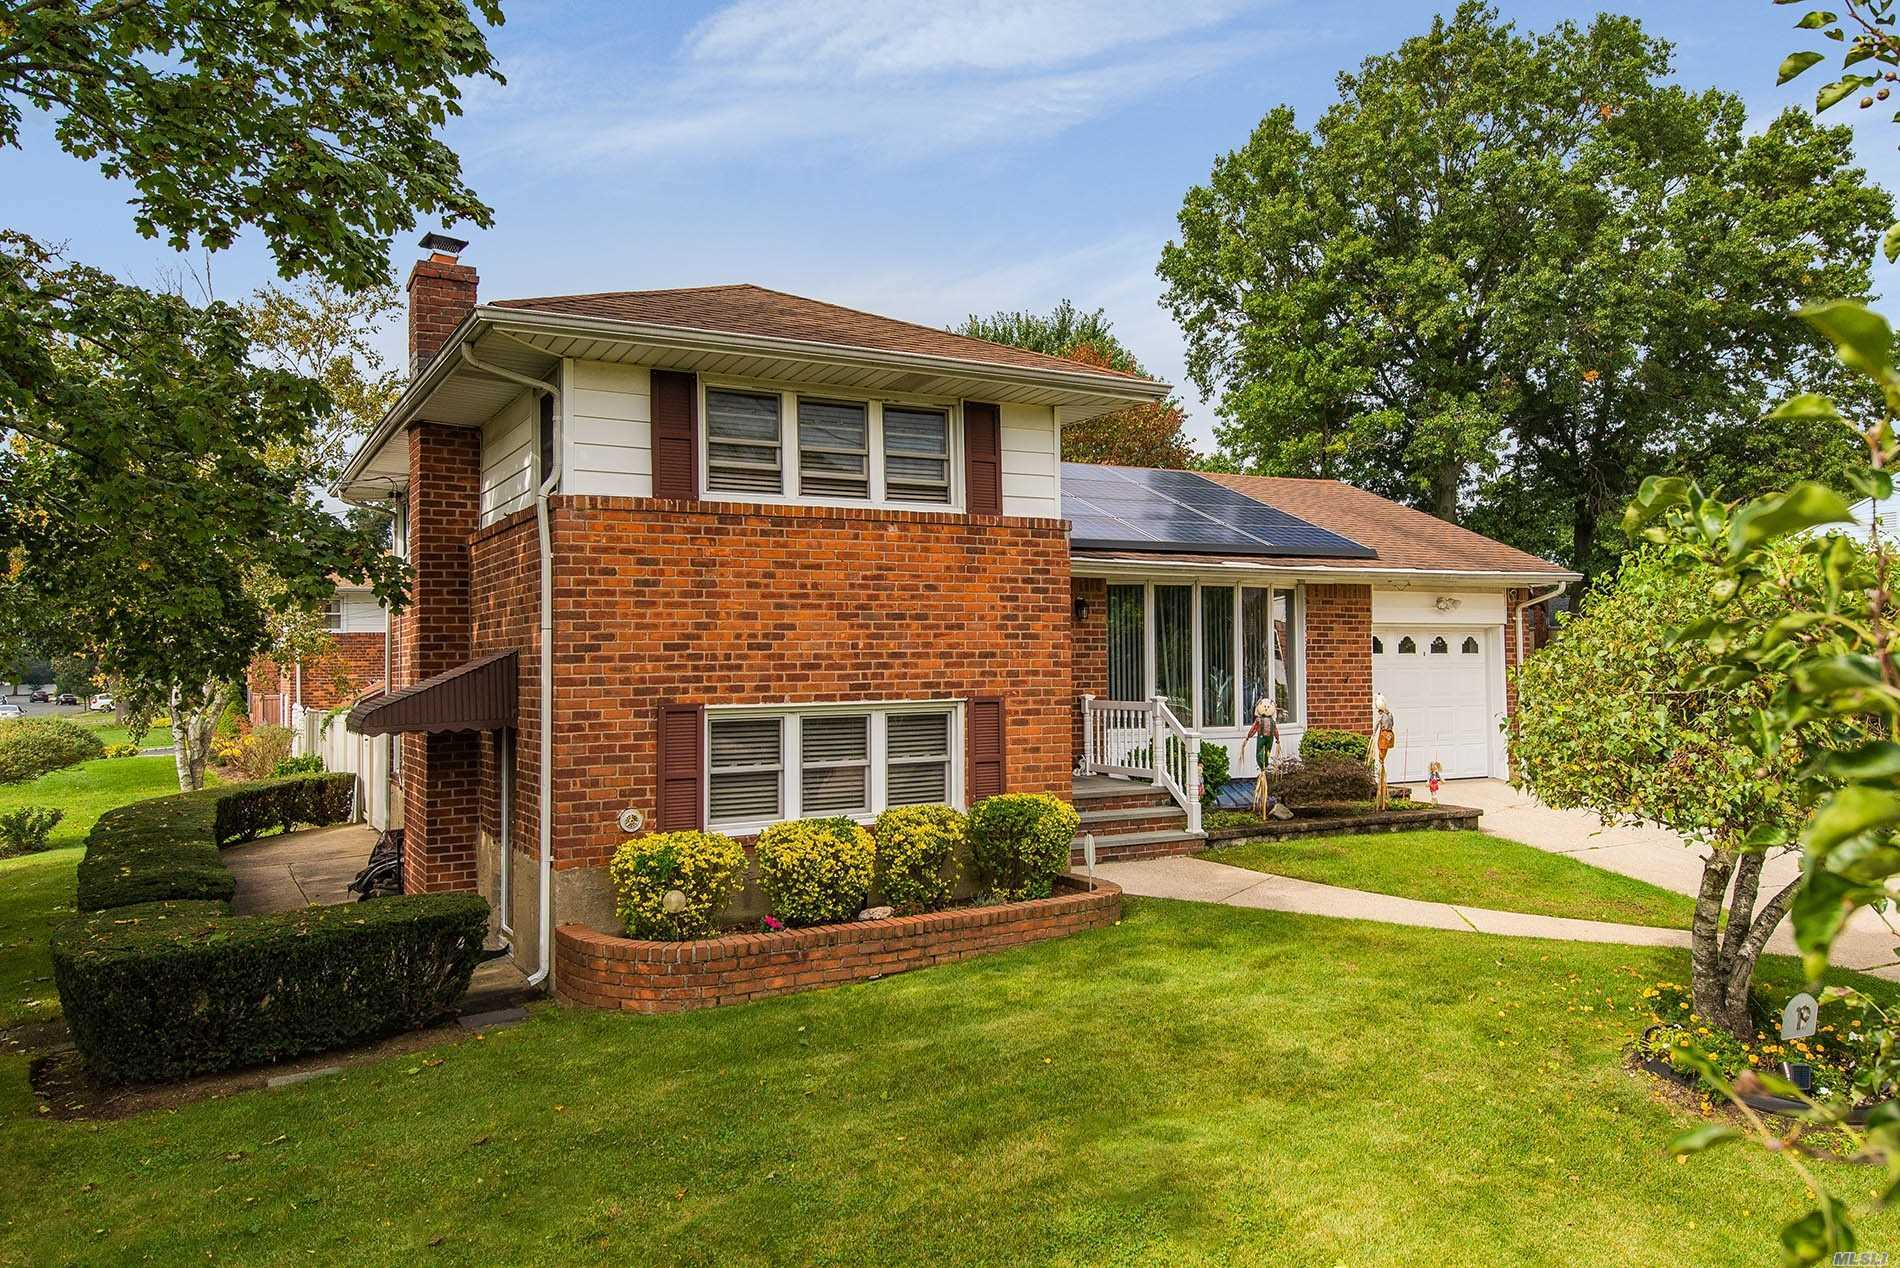 Photo of home for sale at 19 Fairlawn Dr, Deer Park NY